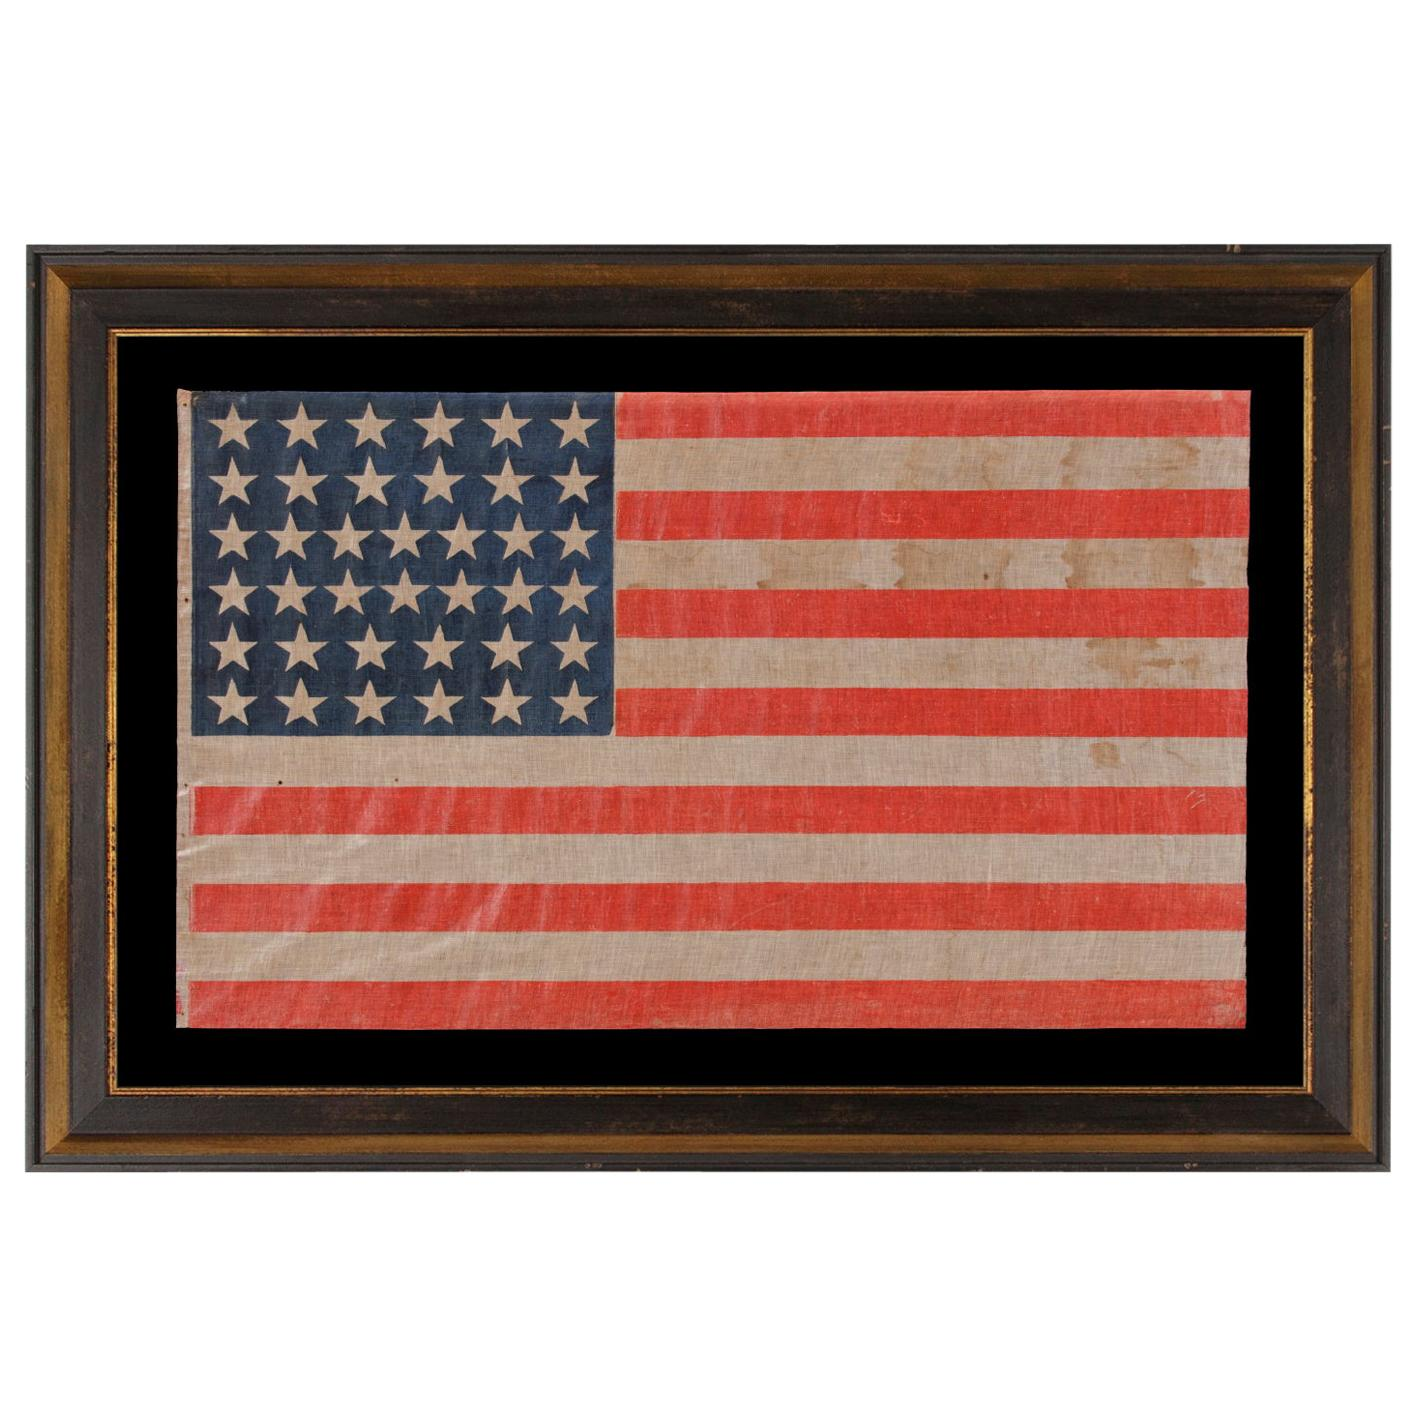 38 Star Antique American Large Scale Parade Flag, Colorado Statehood